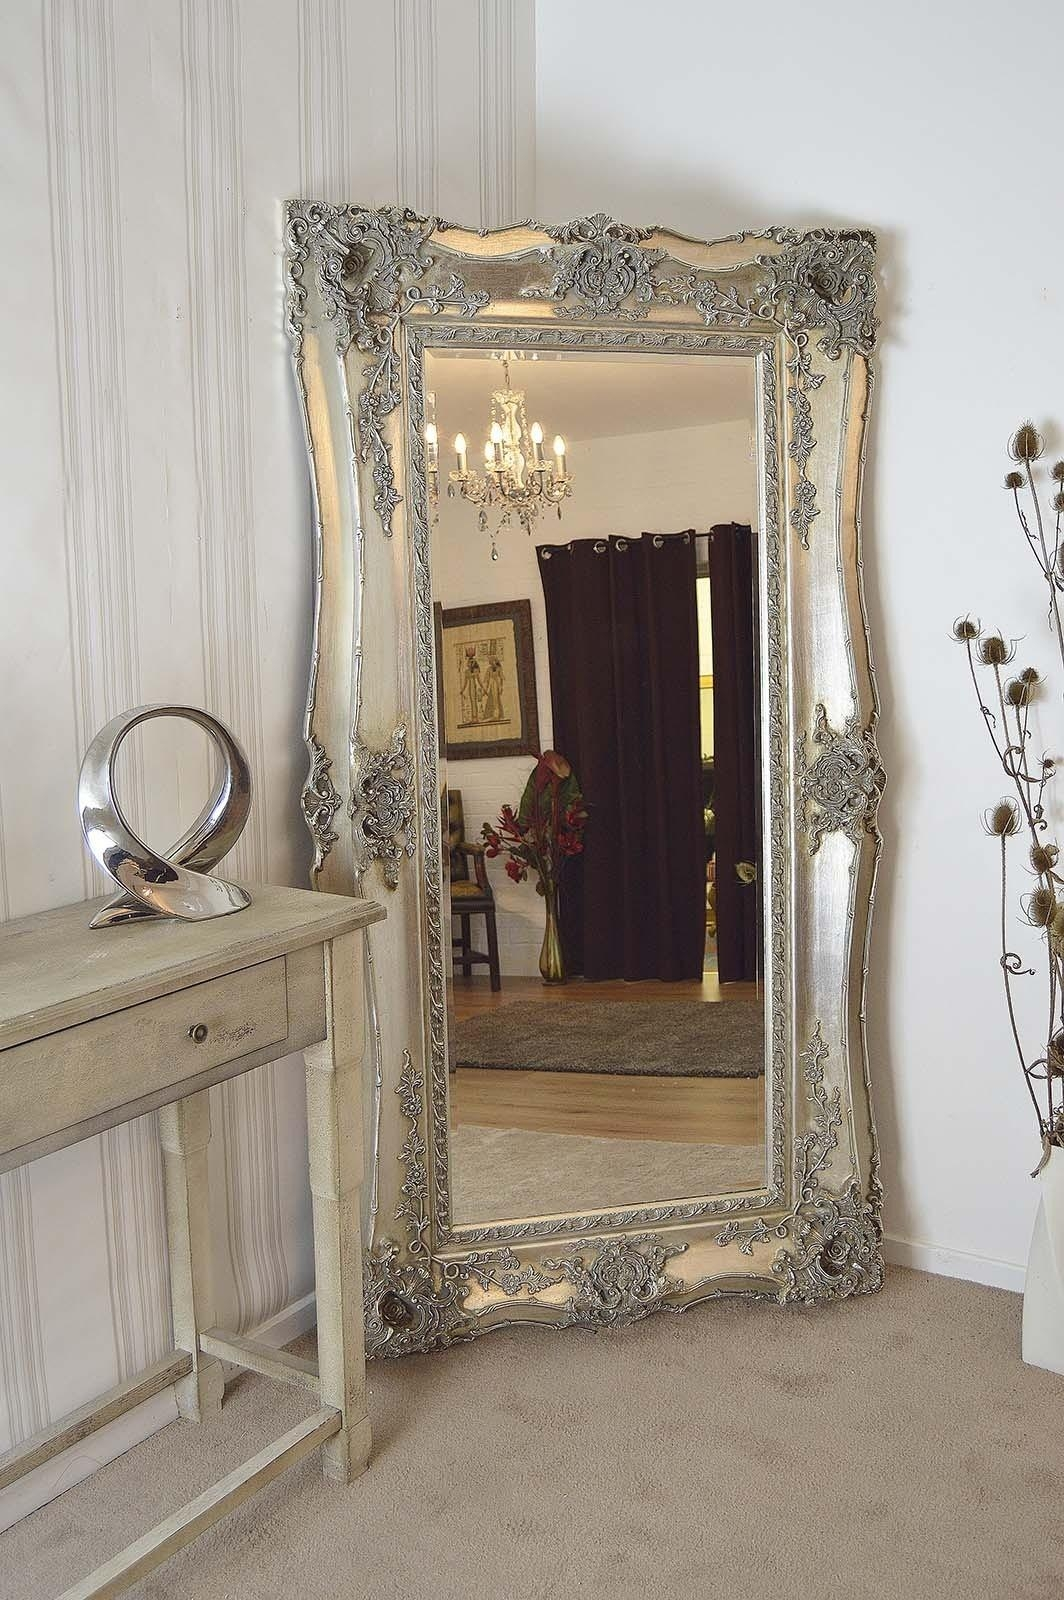 Homeware: Oval Full Length Standing Mirror | Large Floor Mirrors Regarding Large Floor Mirrors (Image 13 of 20)